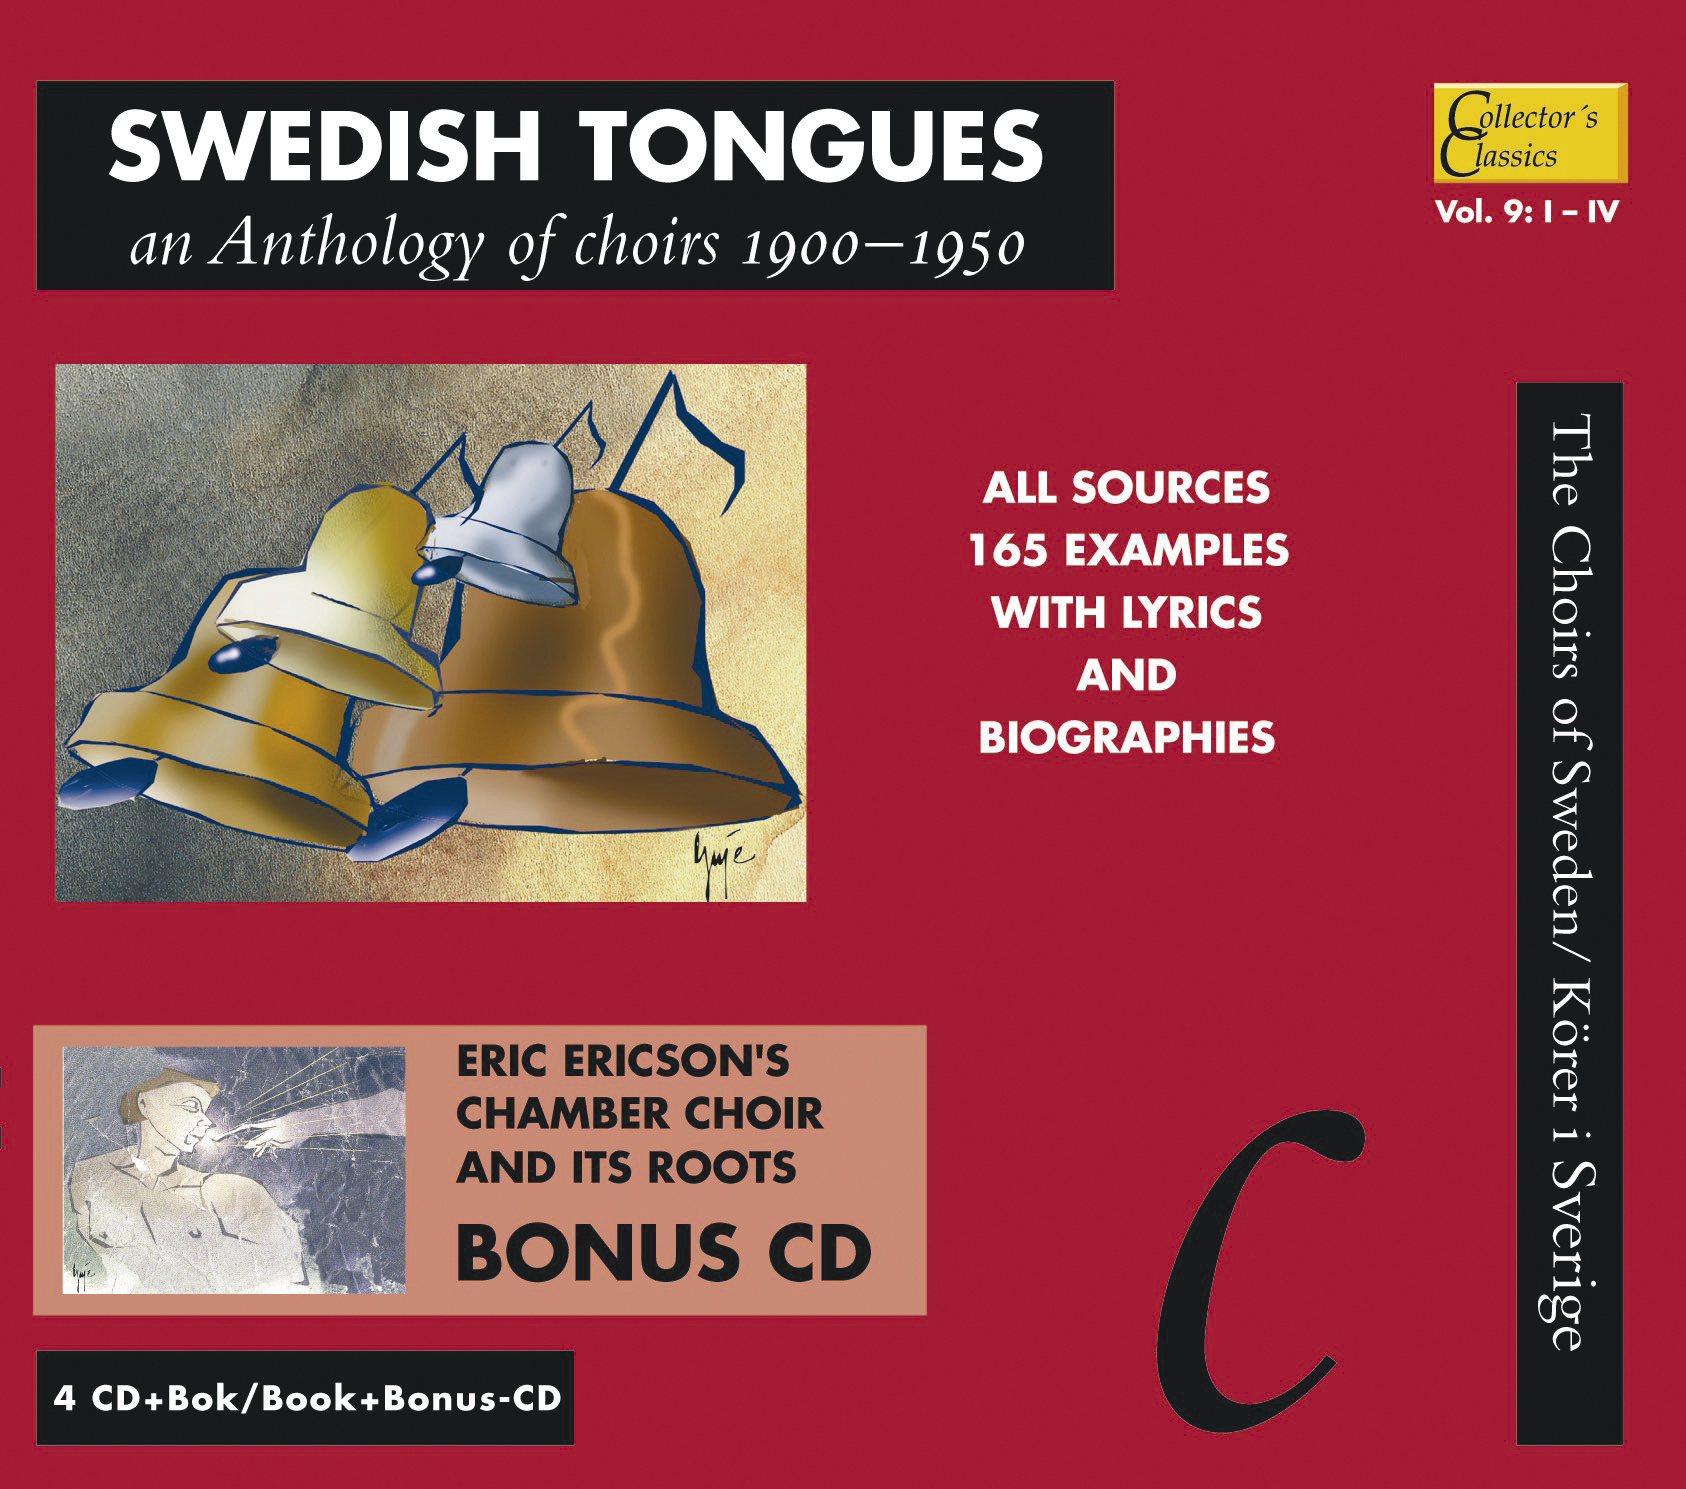 Swedish Tongues, an Anthology of choirs vol. 9